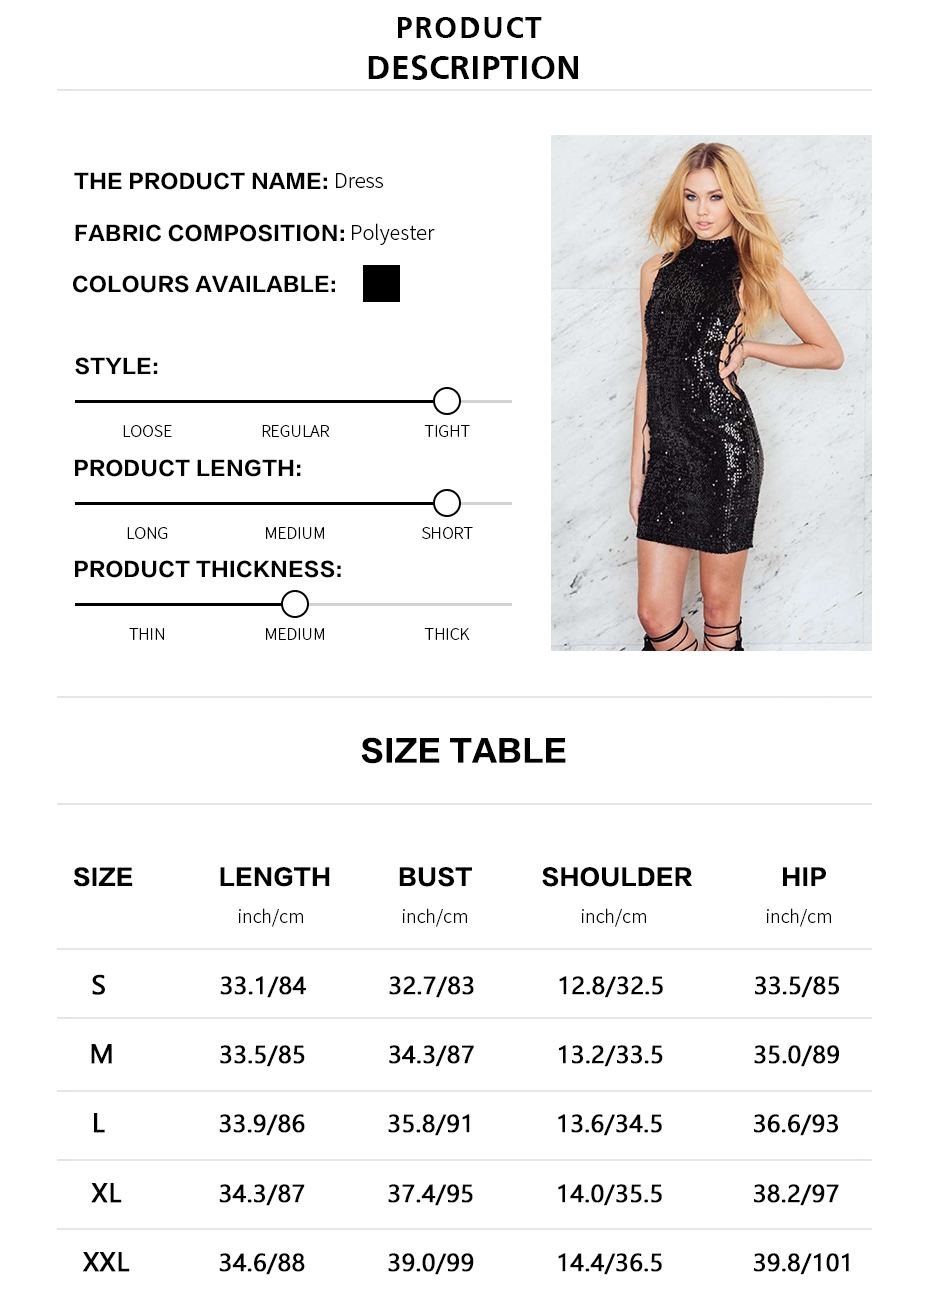 HDY Haoduoyi 2017 Fashion Women Summer Dress Sexy Club Sheath Sleeveless Sequined Dress Natural MIni Stand Solid Black Vestidos 1